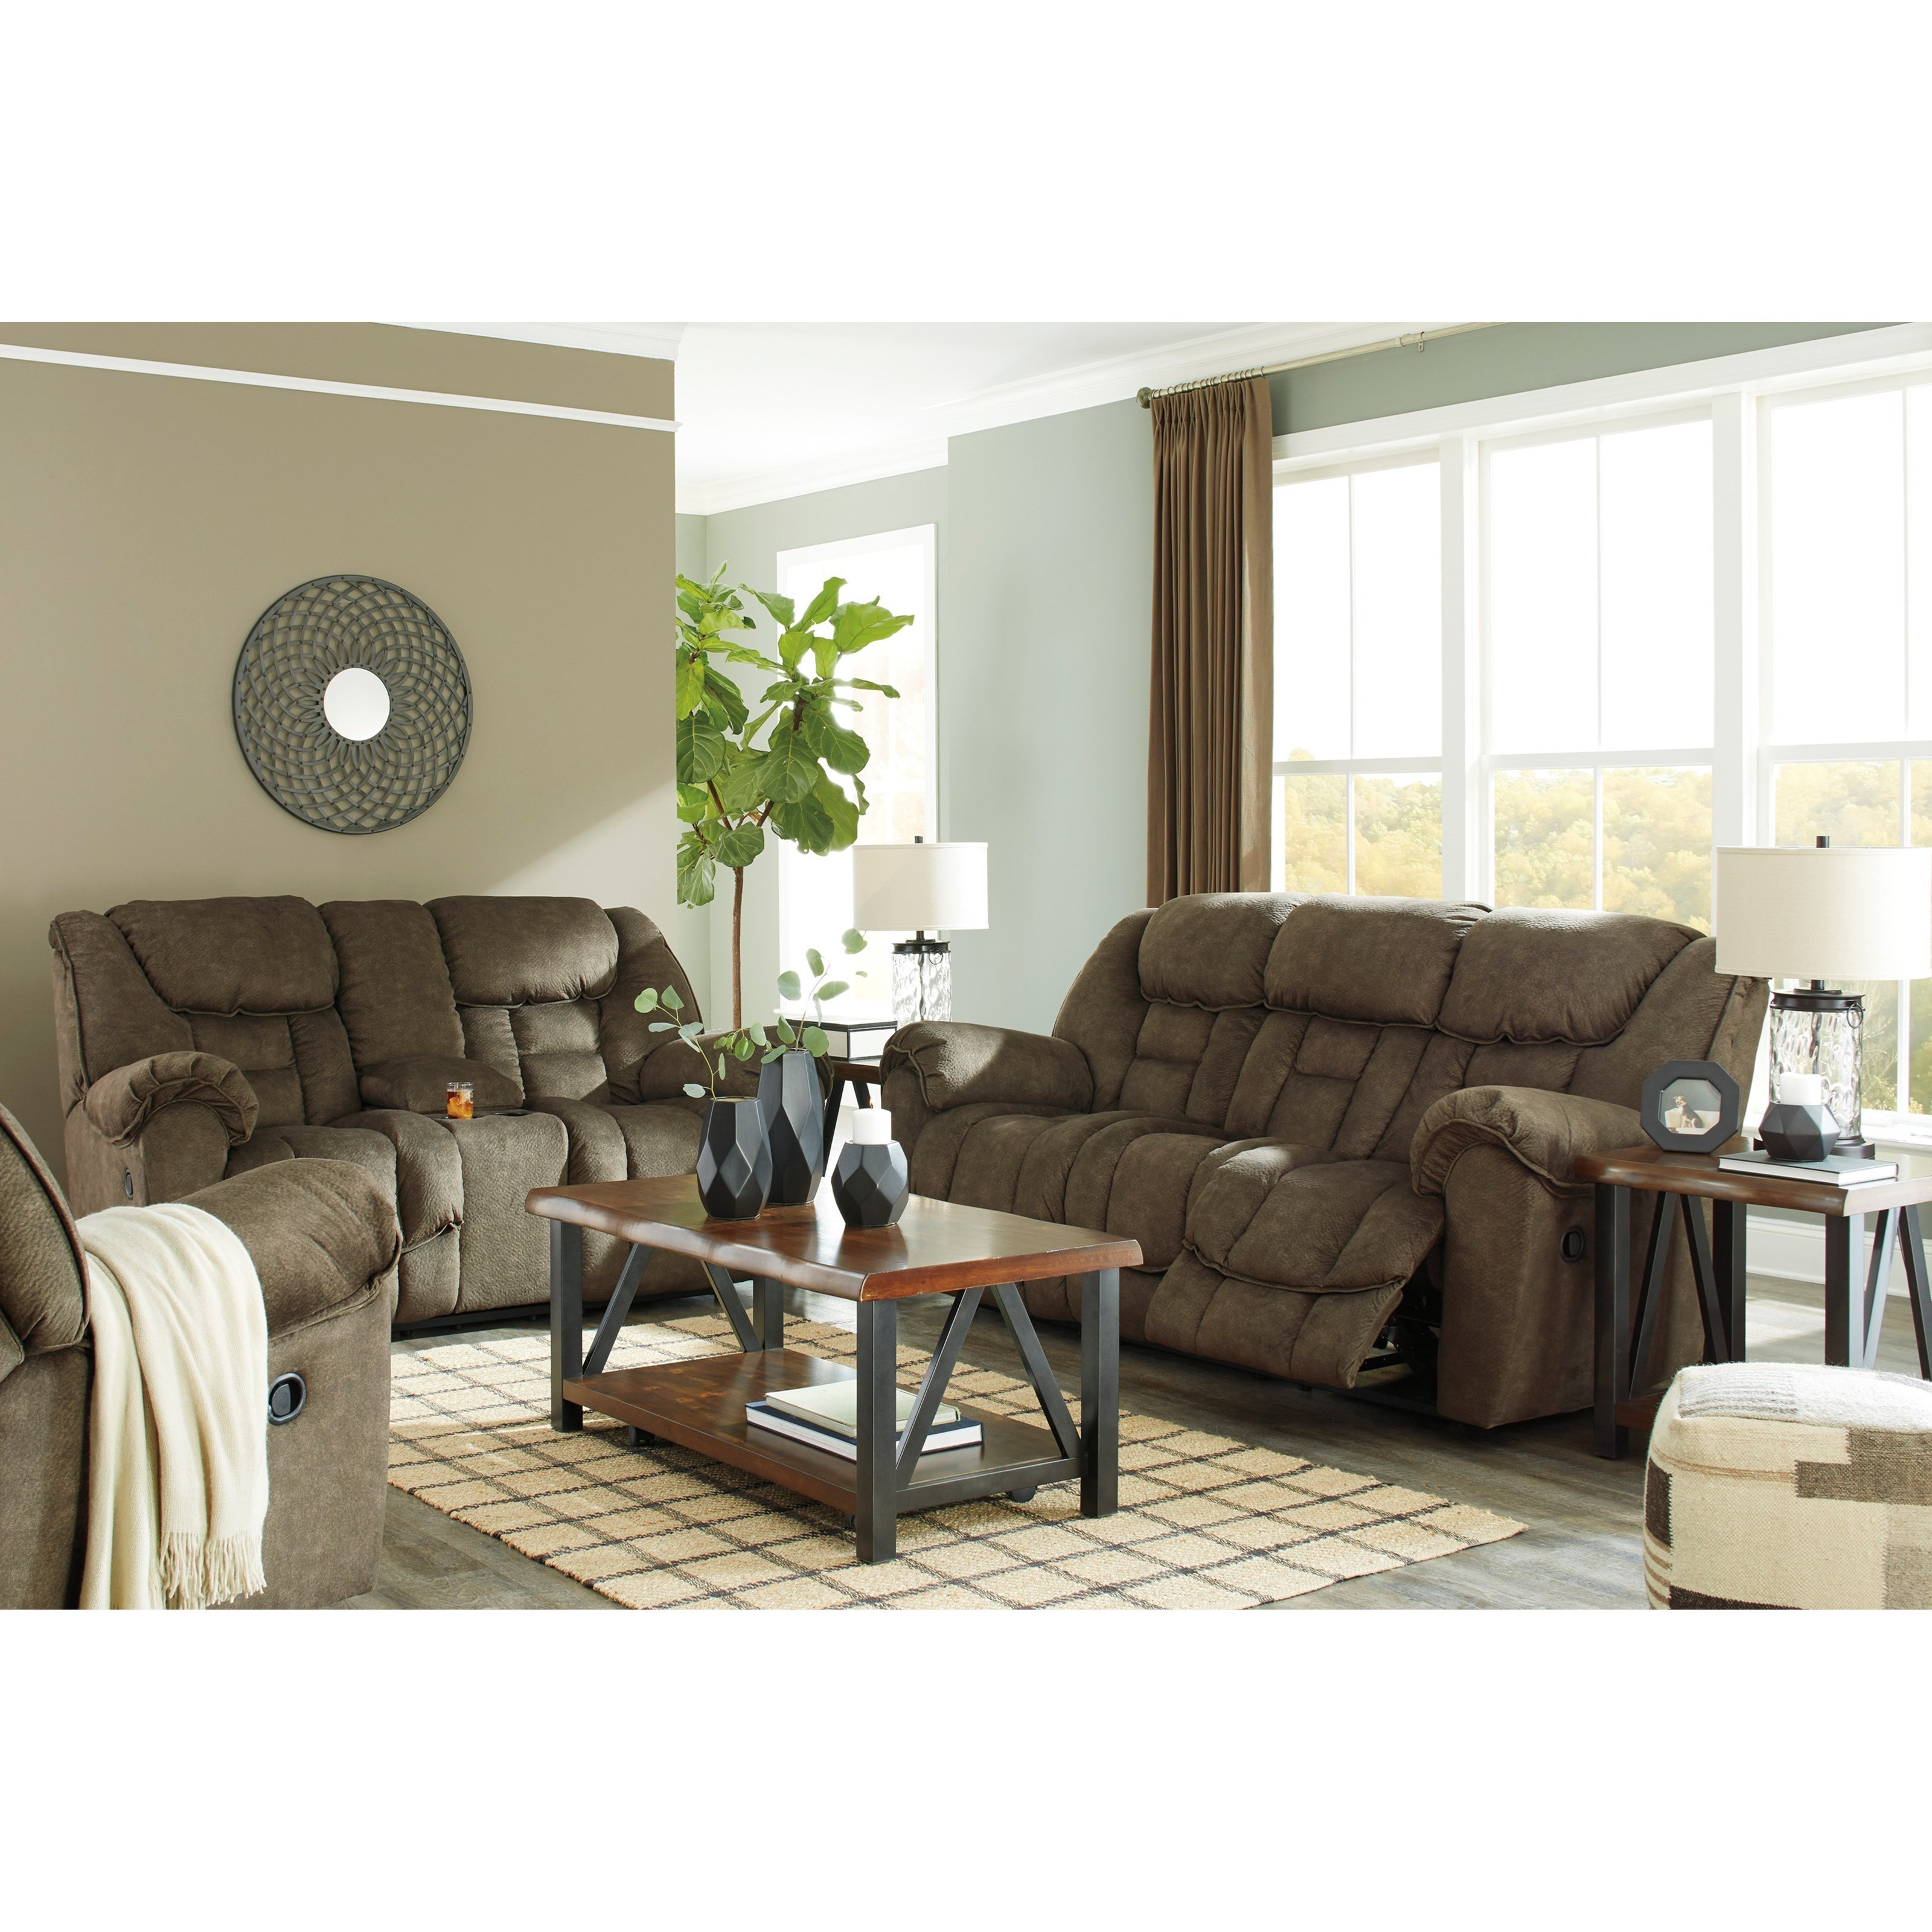 Signature Design By Ashley Capehorn Reclining Living Room Group